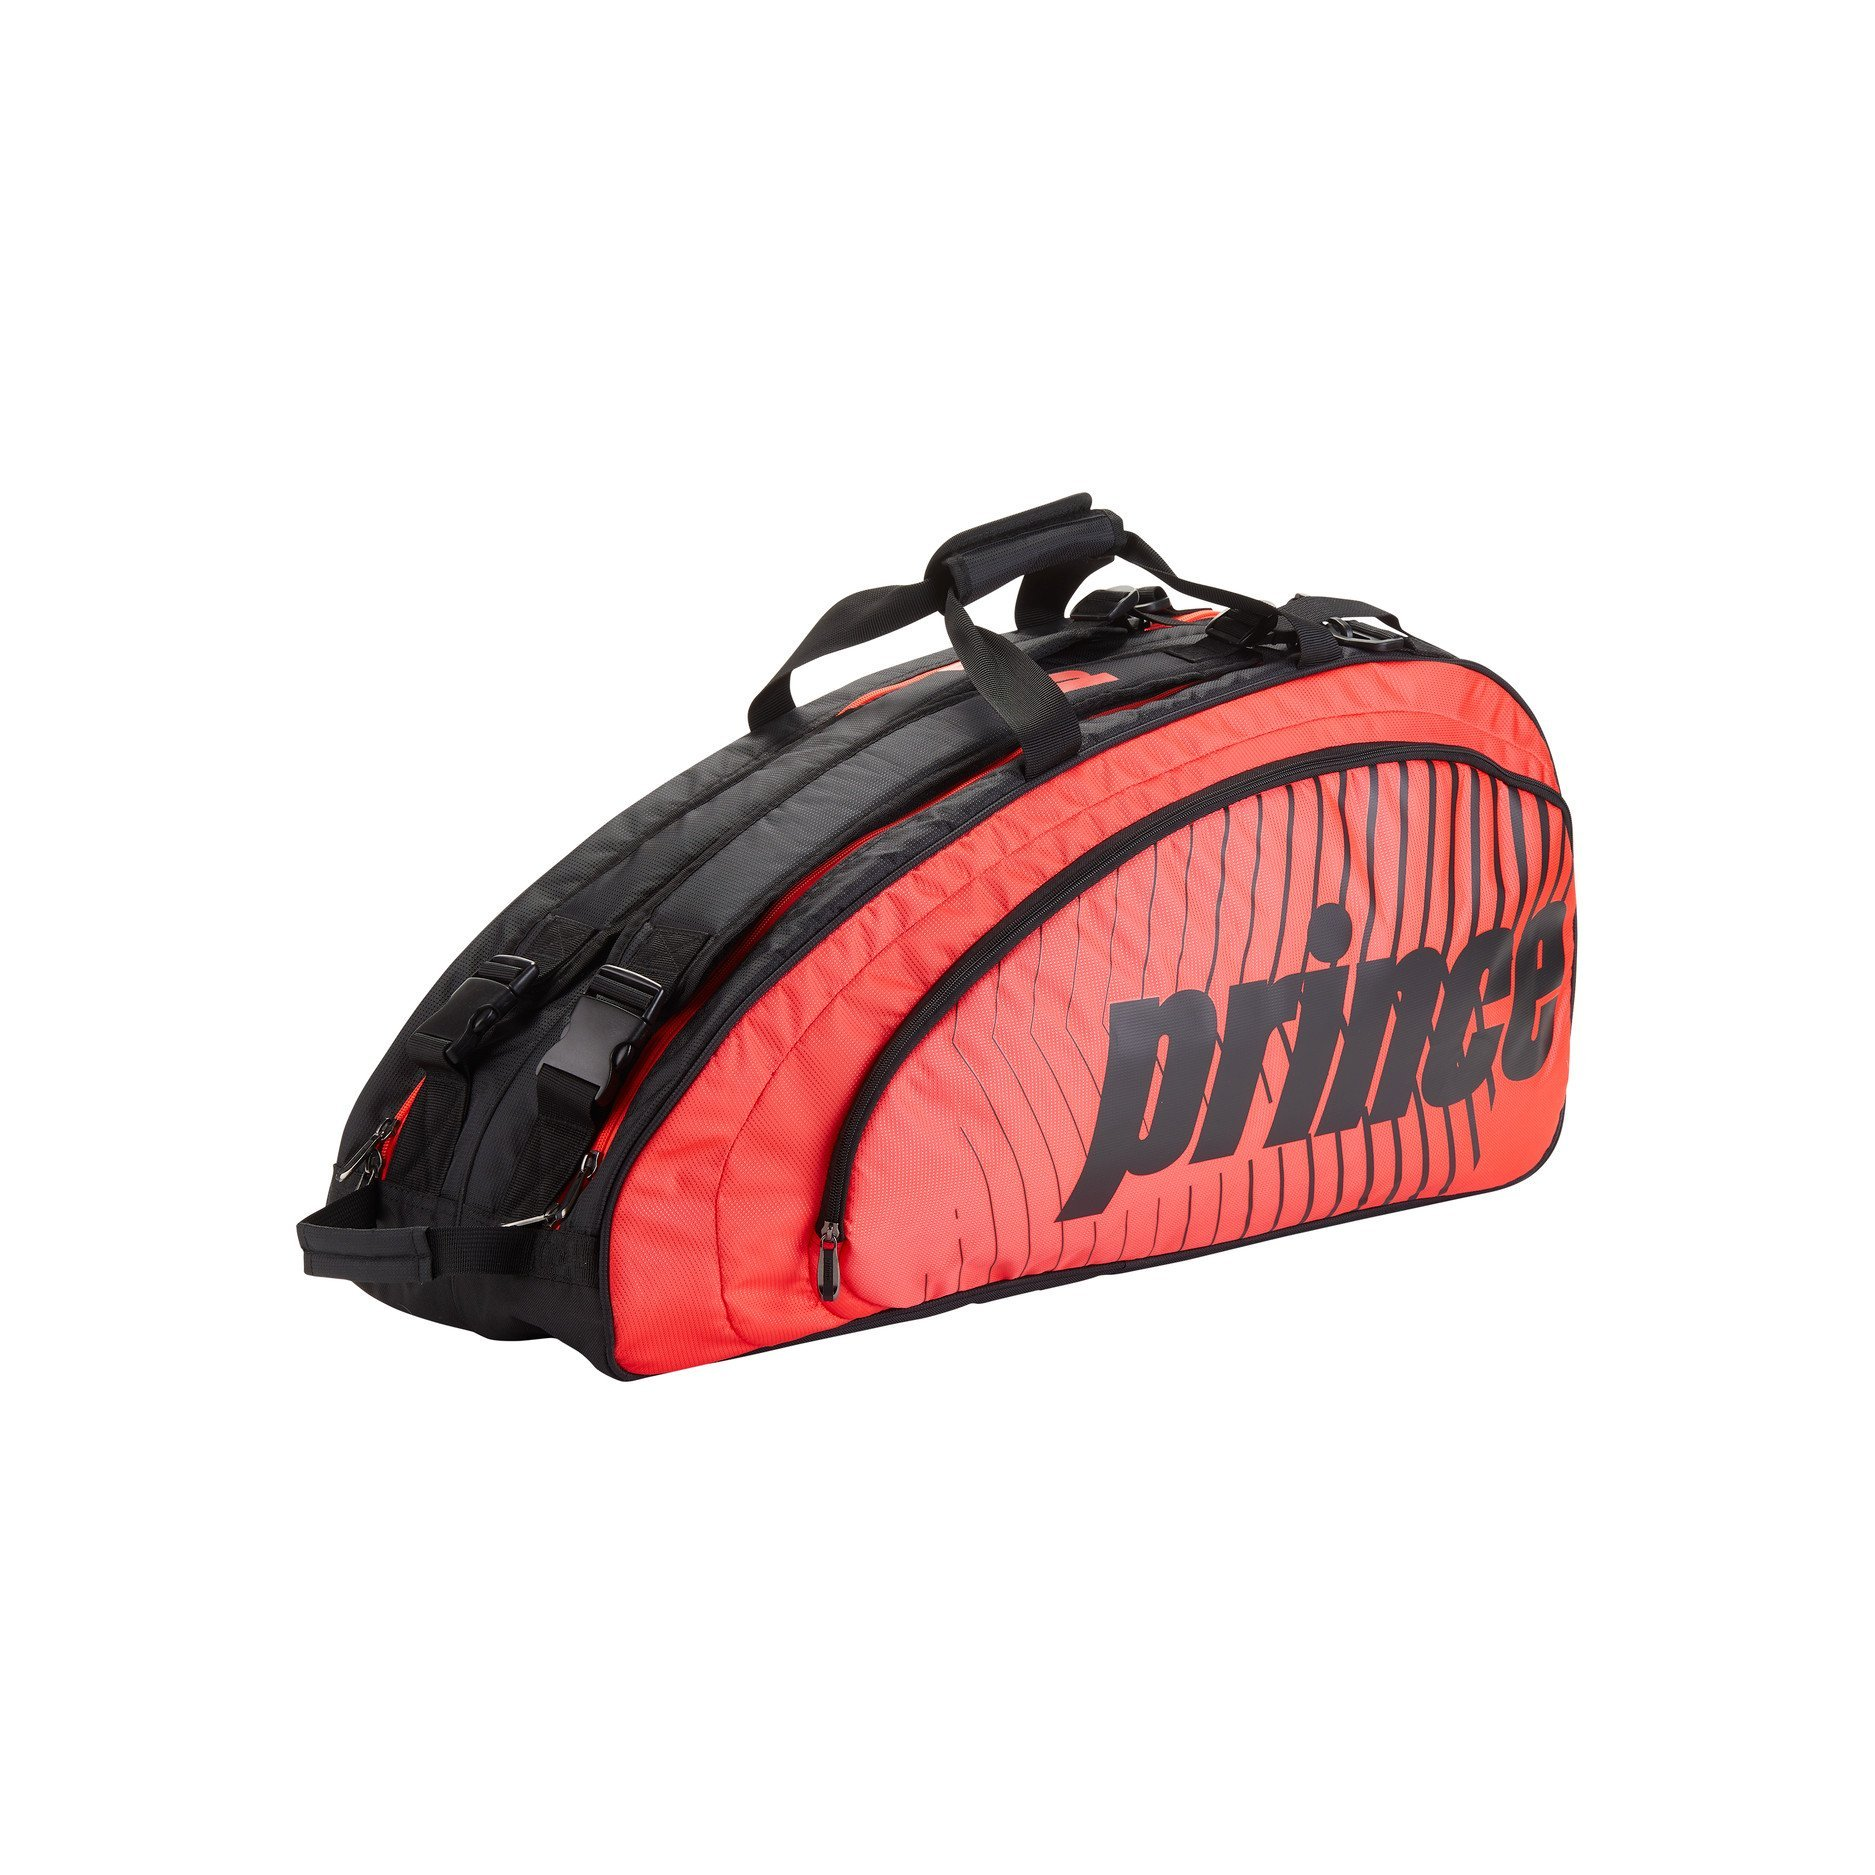 Prince Tennis Bag – Tour Future (Black and Red)